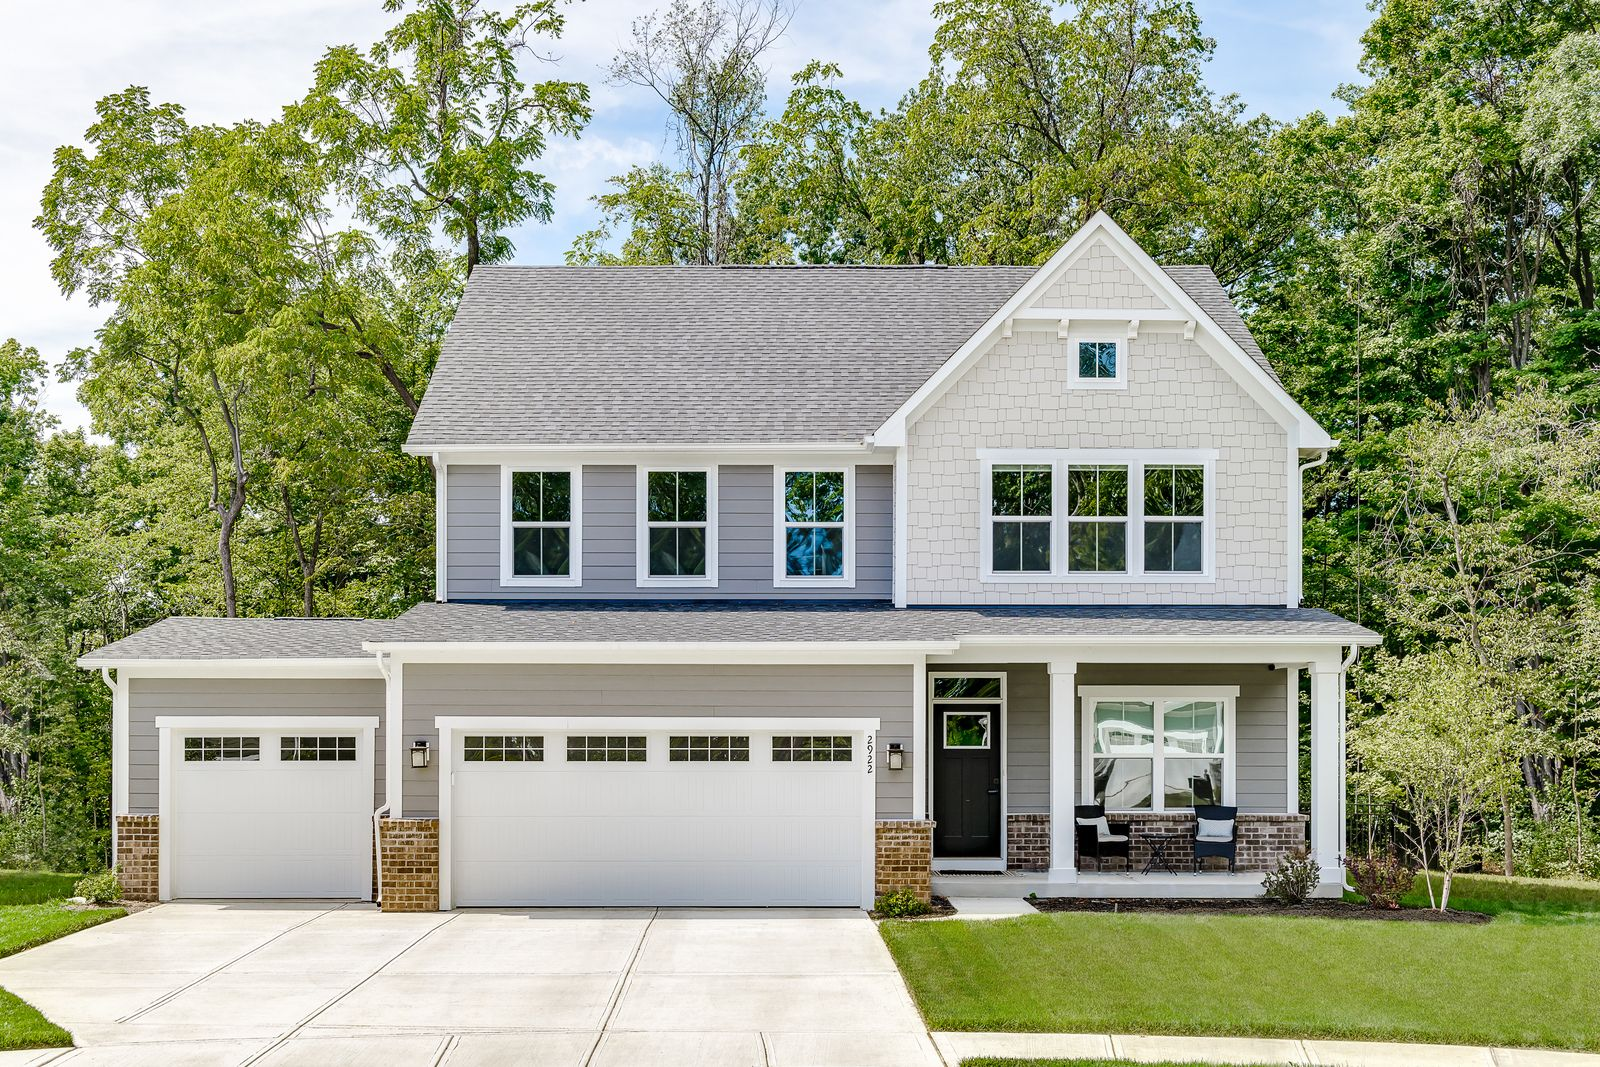 Heritage Hill: Scenic Wooded Homesites Backing to Nature Preserve:Basement & 3-car garage options. Small town charm w easy access to downtown.Click here to learn more about Heritage Hill!